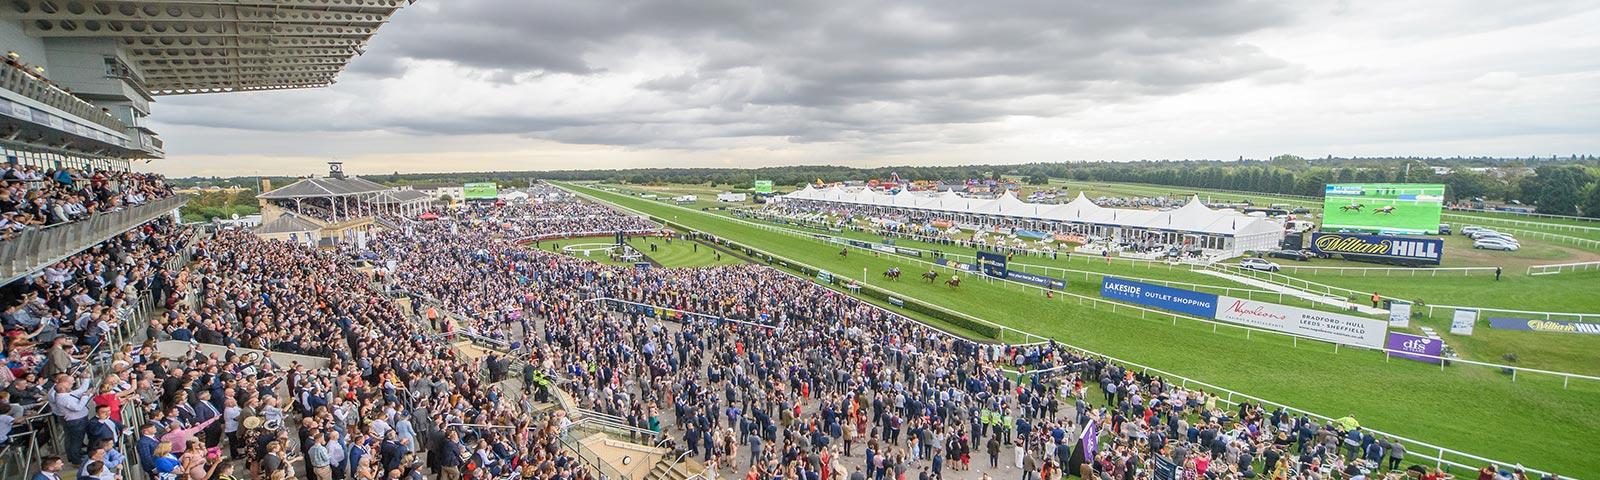 Crowds in the main grandstand at Doncaster Racecourse